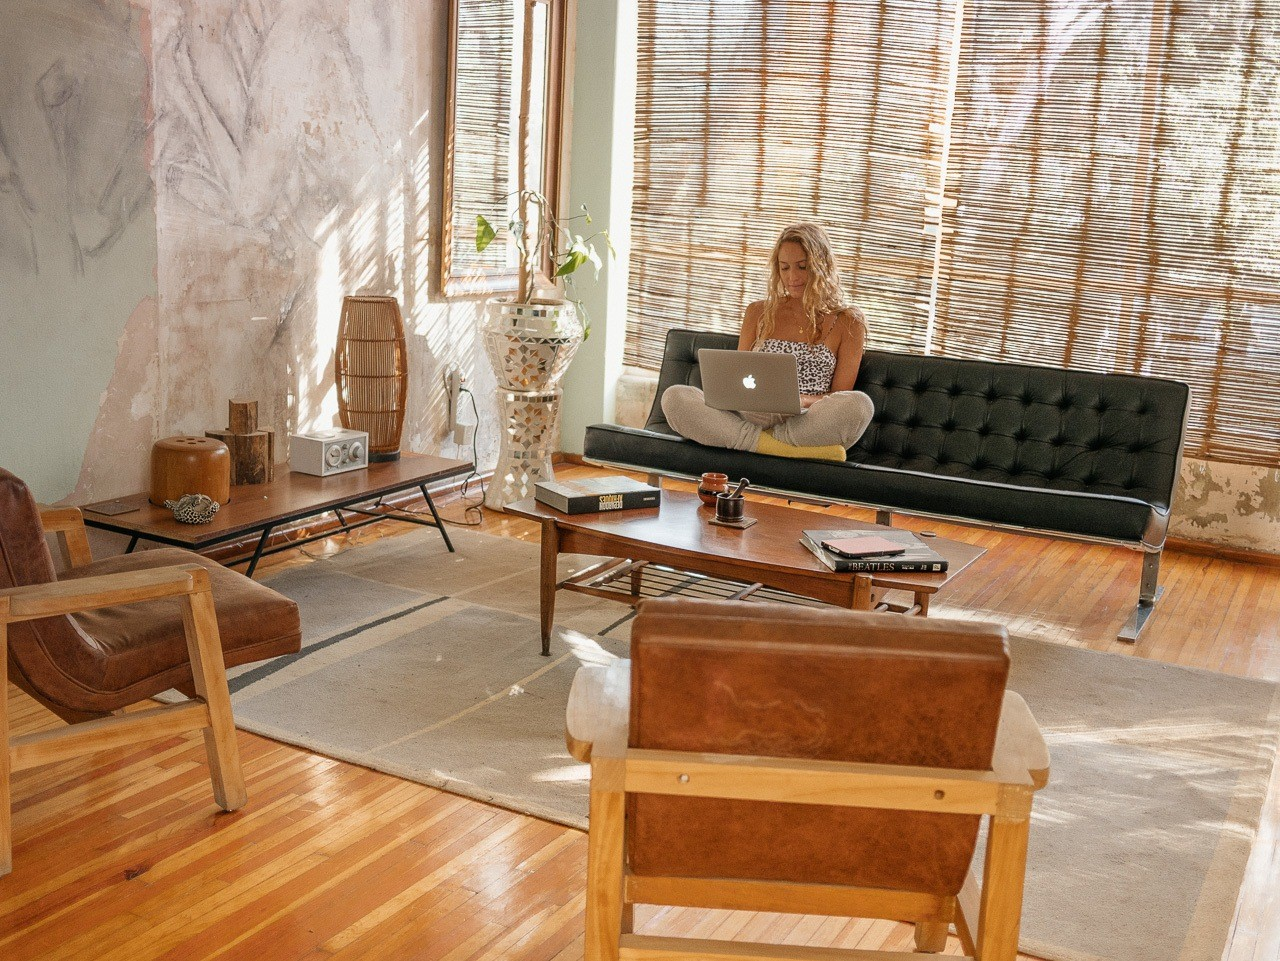 Where to Stay in Mexico City: Trendy Areas Near Top Attractions